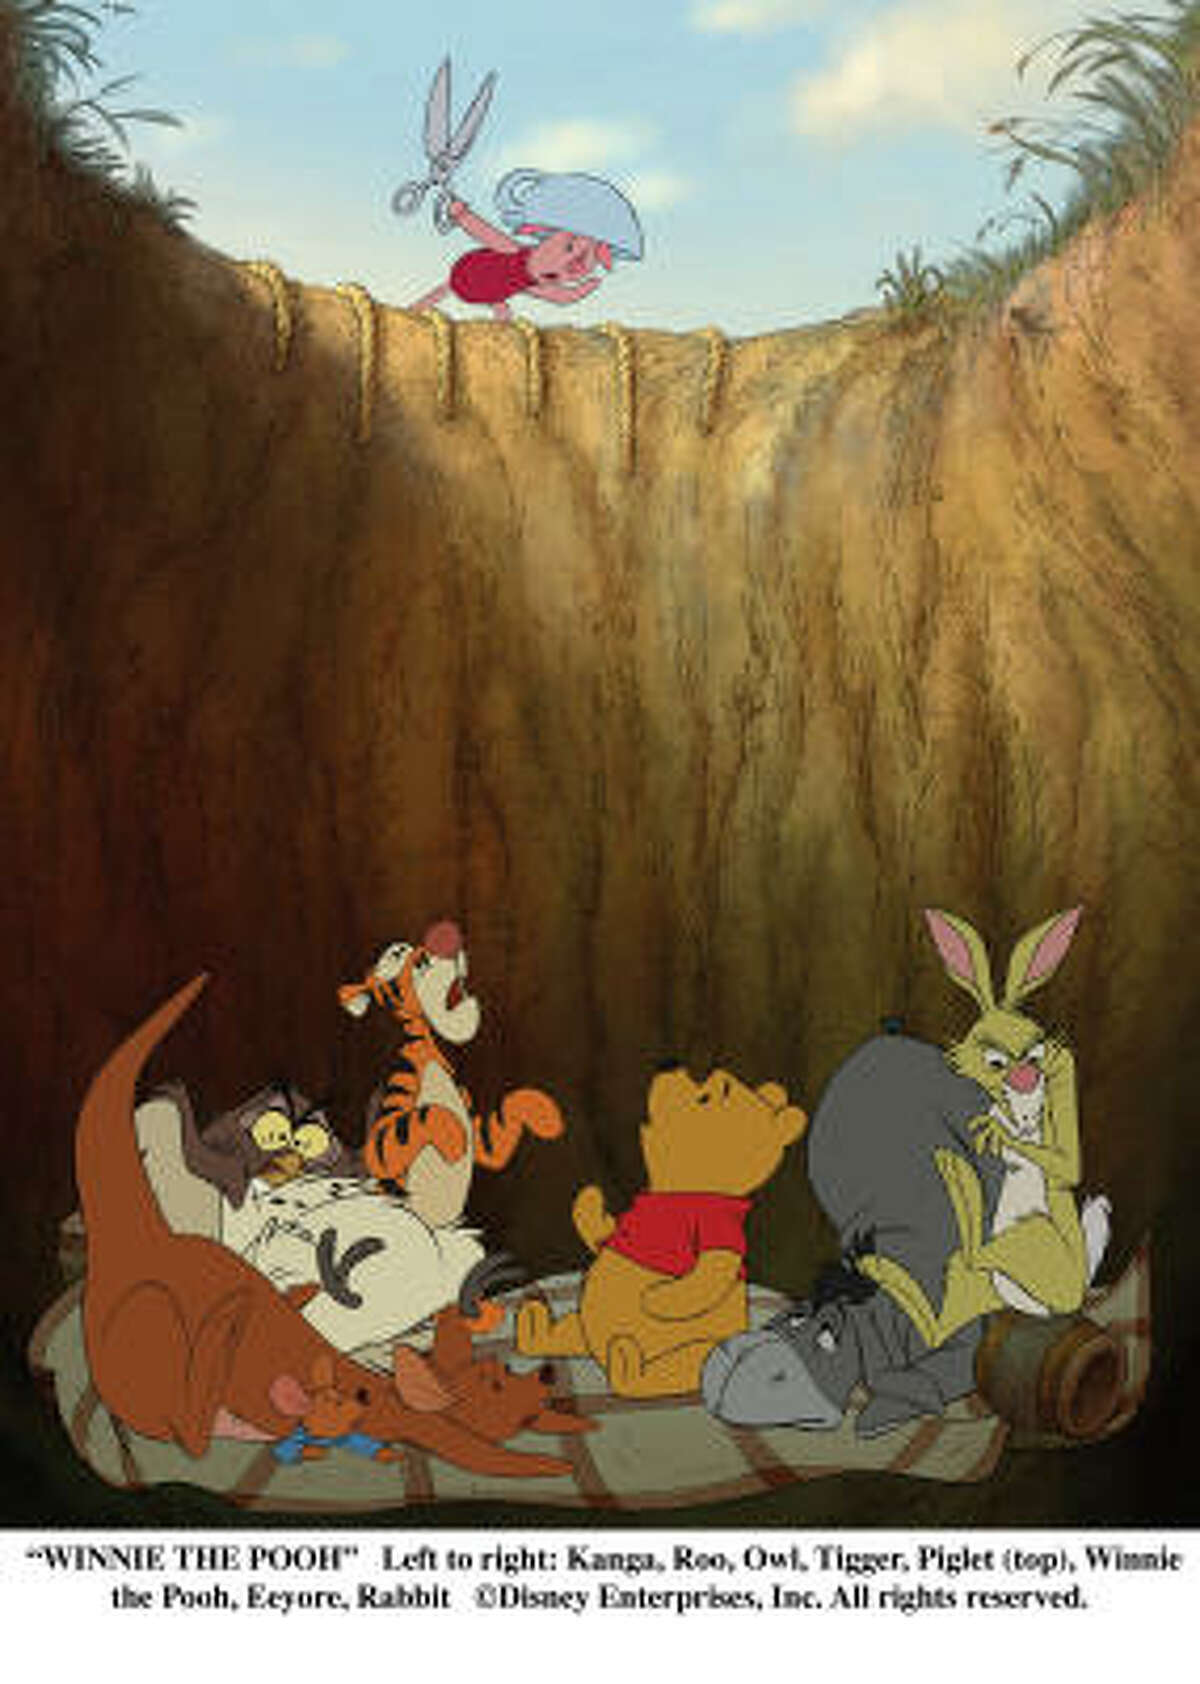 A timeless classic: Winnie the Pooh: During an ordinary day in Hundred Acre Wood, Winnie the Pooh sets out to find some honey. Misinterpreting a note from Christopher Robin, Pooh convinces Tigger, Rabbit, Piglet, Owl, Kanga, Roo, and Eeyore that their young friend has been captured by a creature named